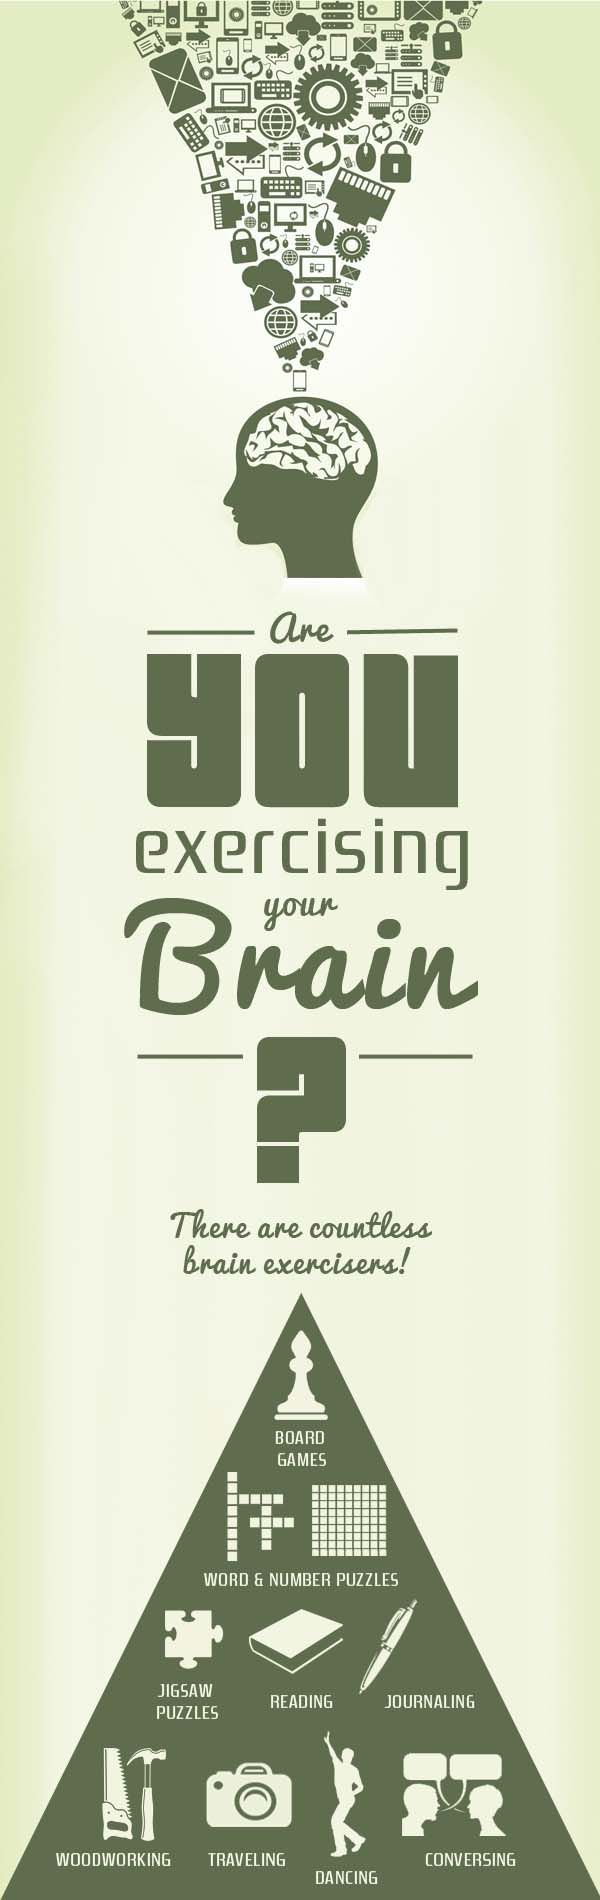 A healthy brain, like the rest of your body, requires exercise! Are you exercising your brain daily? web.extension.illinois.edu